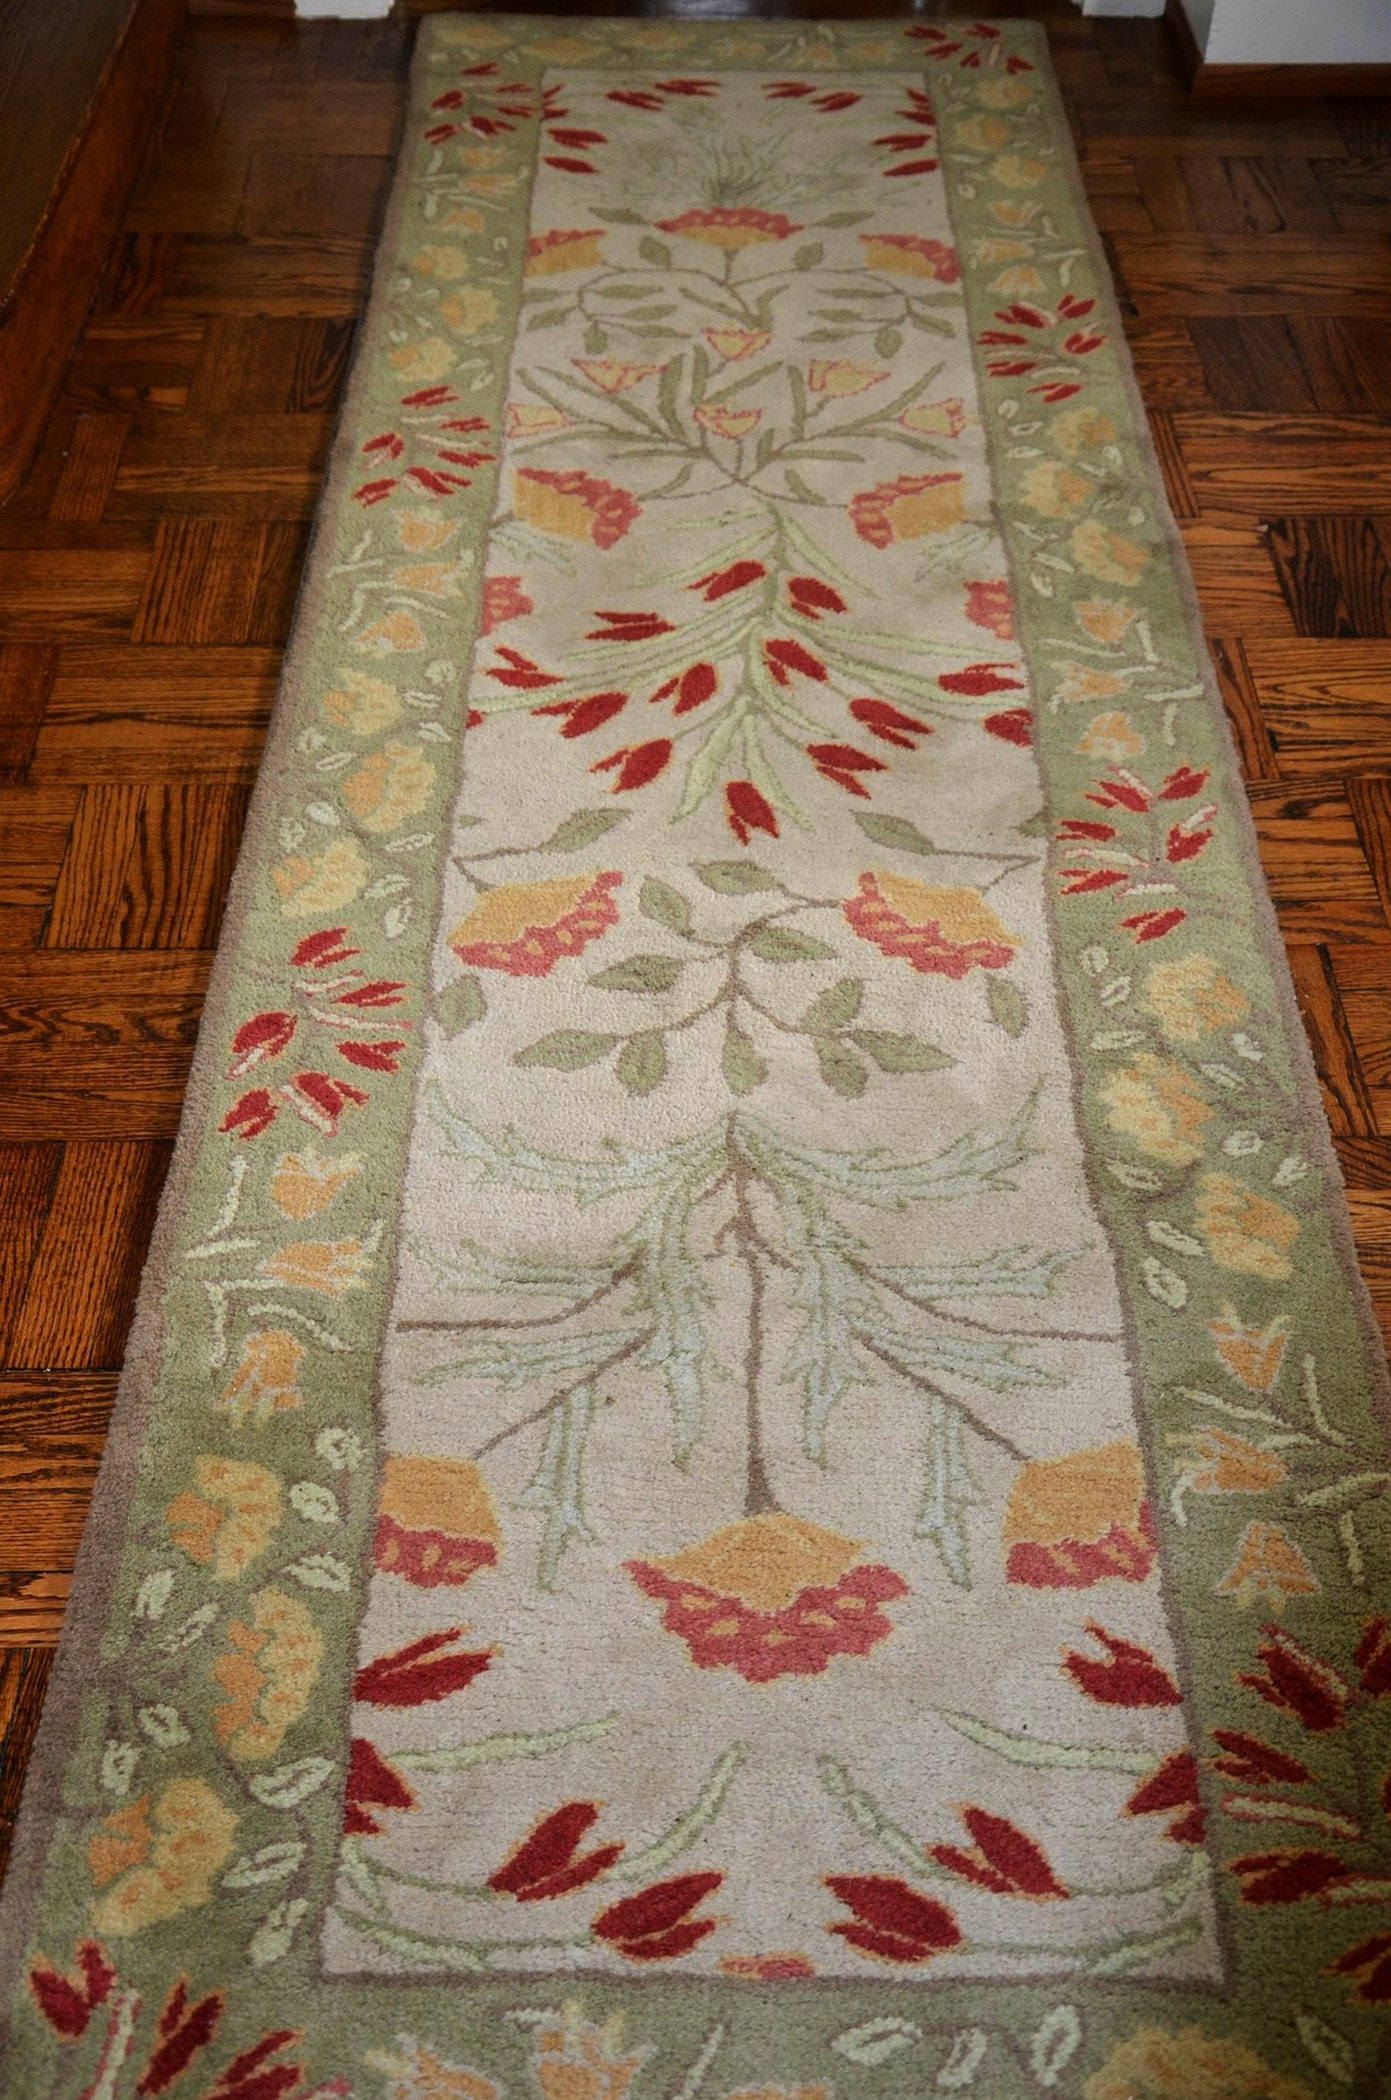 Pottery barn adeline sage wool runner rug ebth for Pottery barn carpet runners